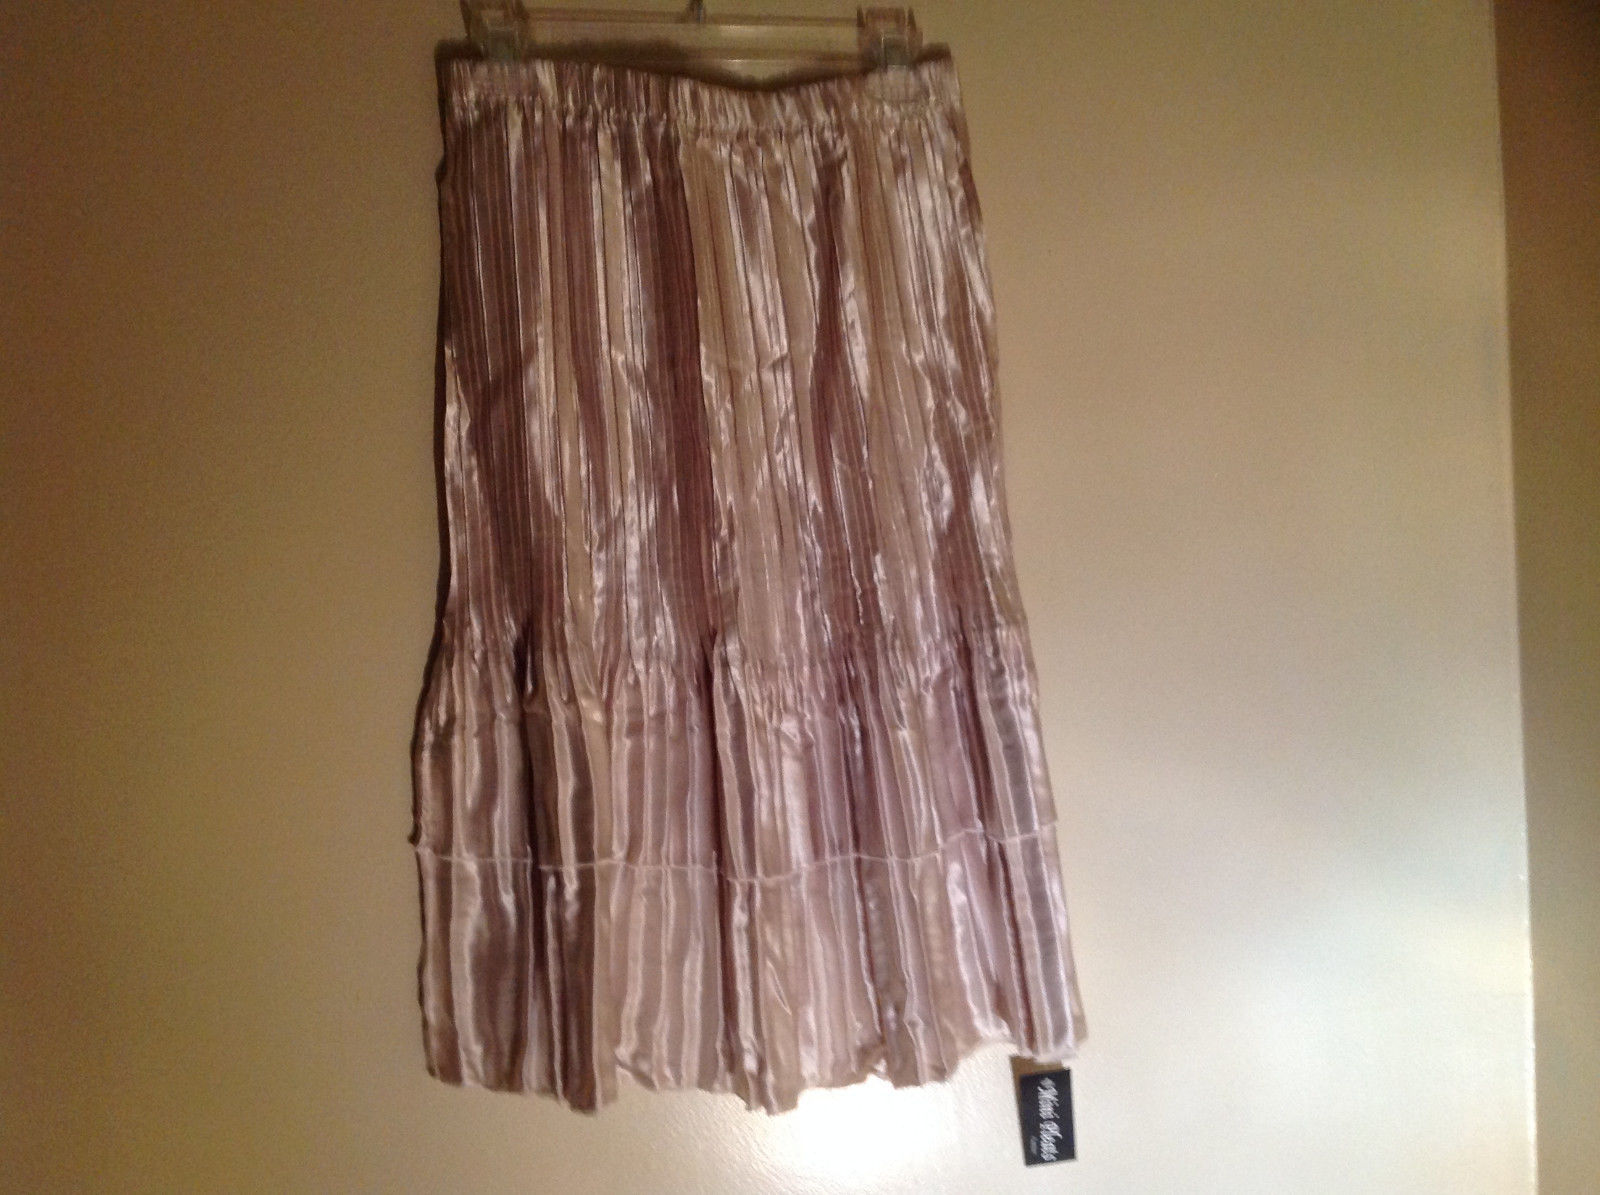 Pale Pink Calf Length Pleated Skirt Shiny Material by Magic Scarf Co.